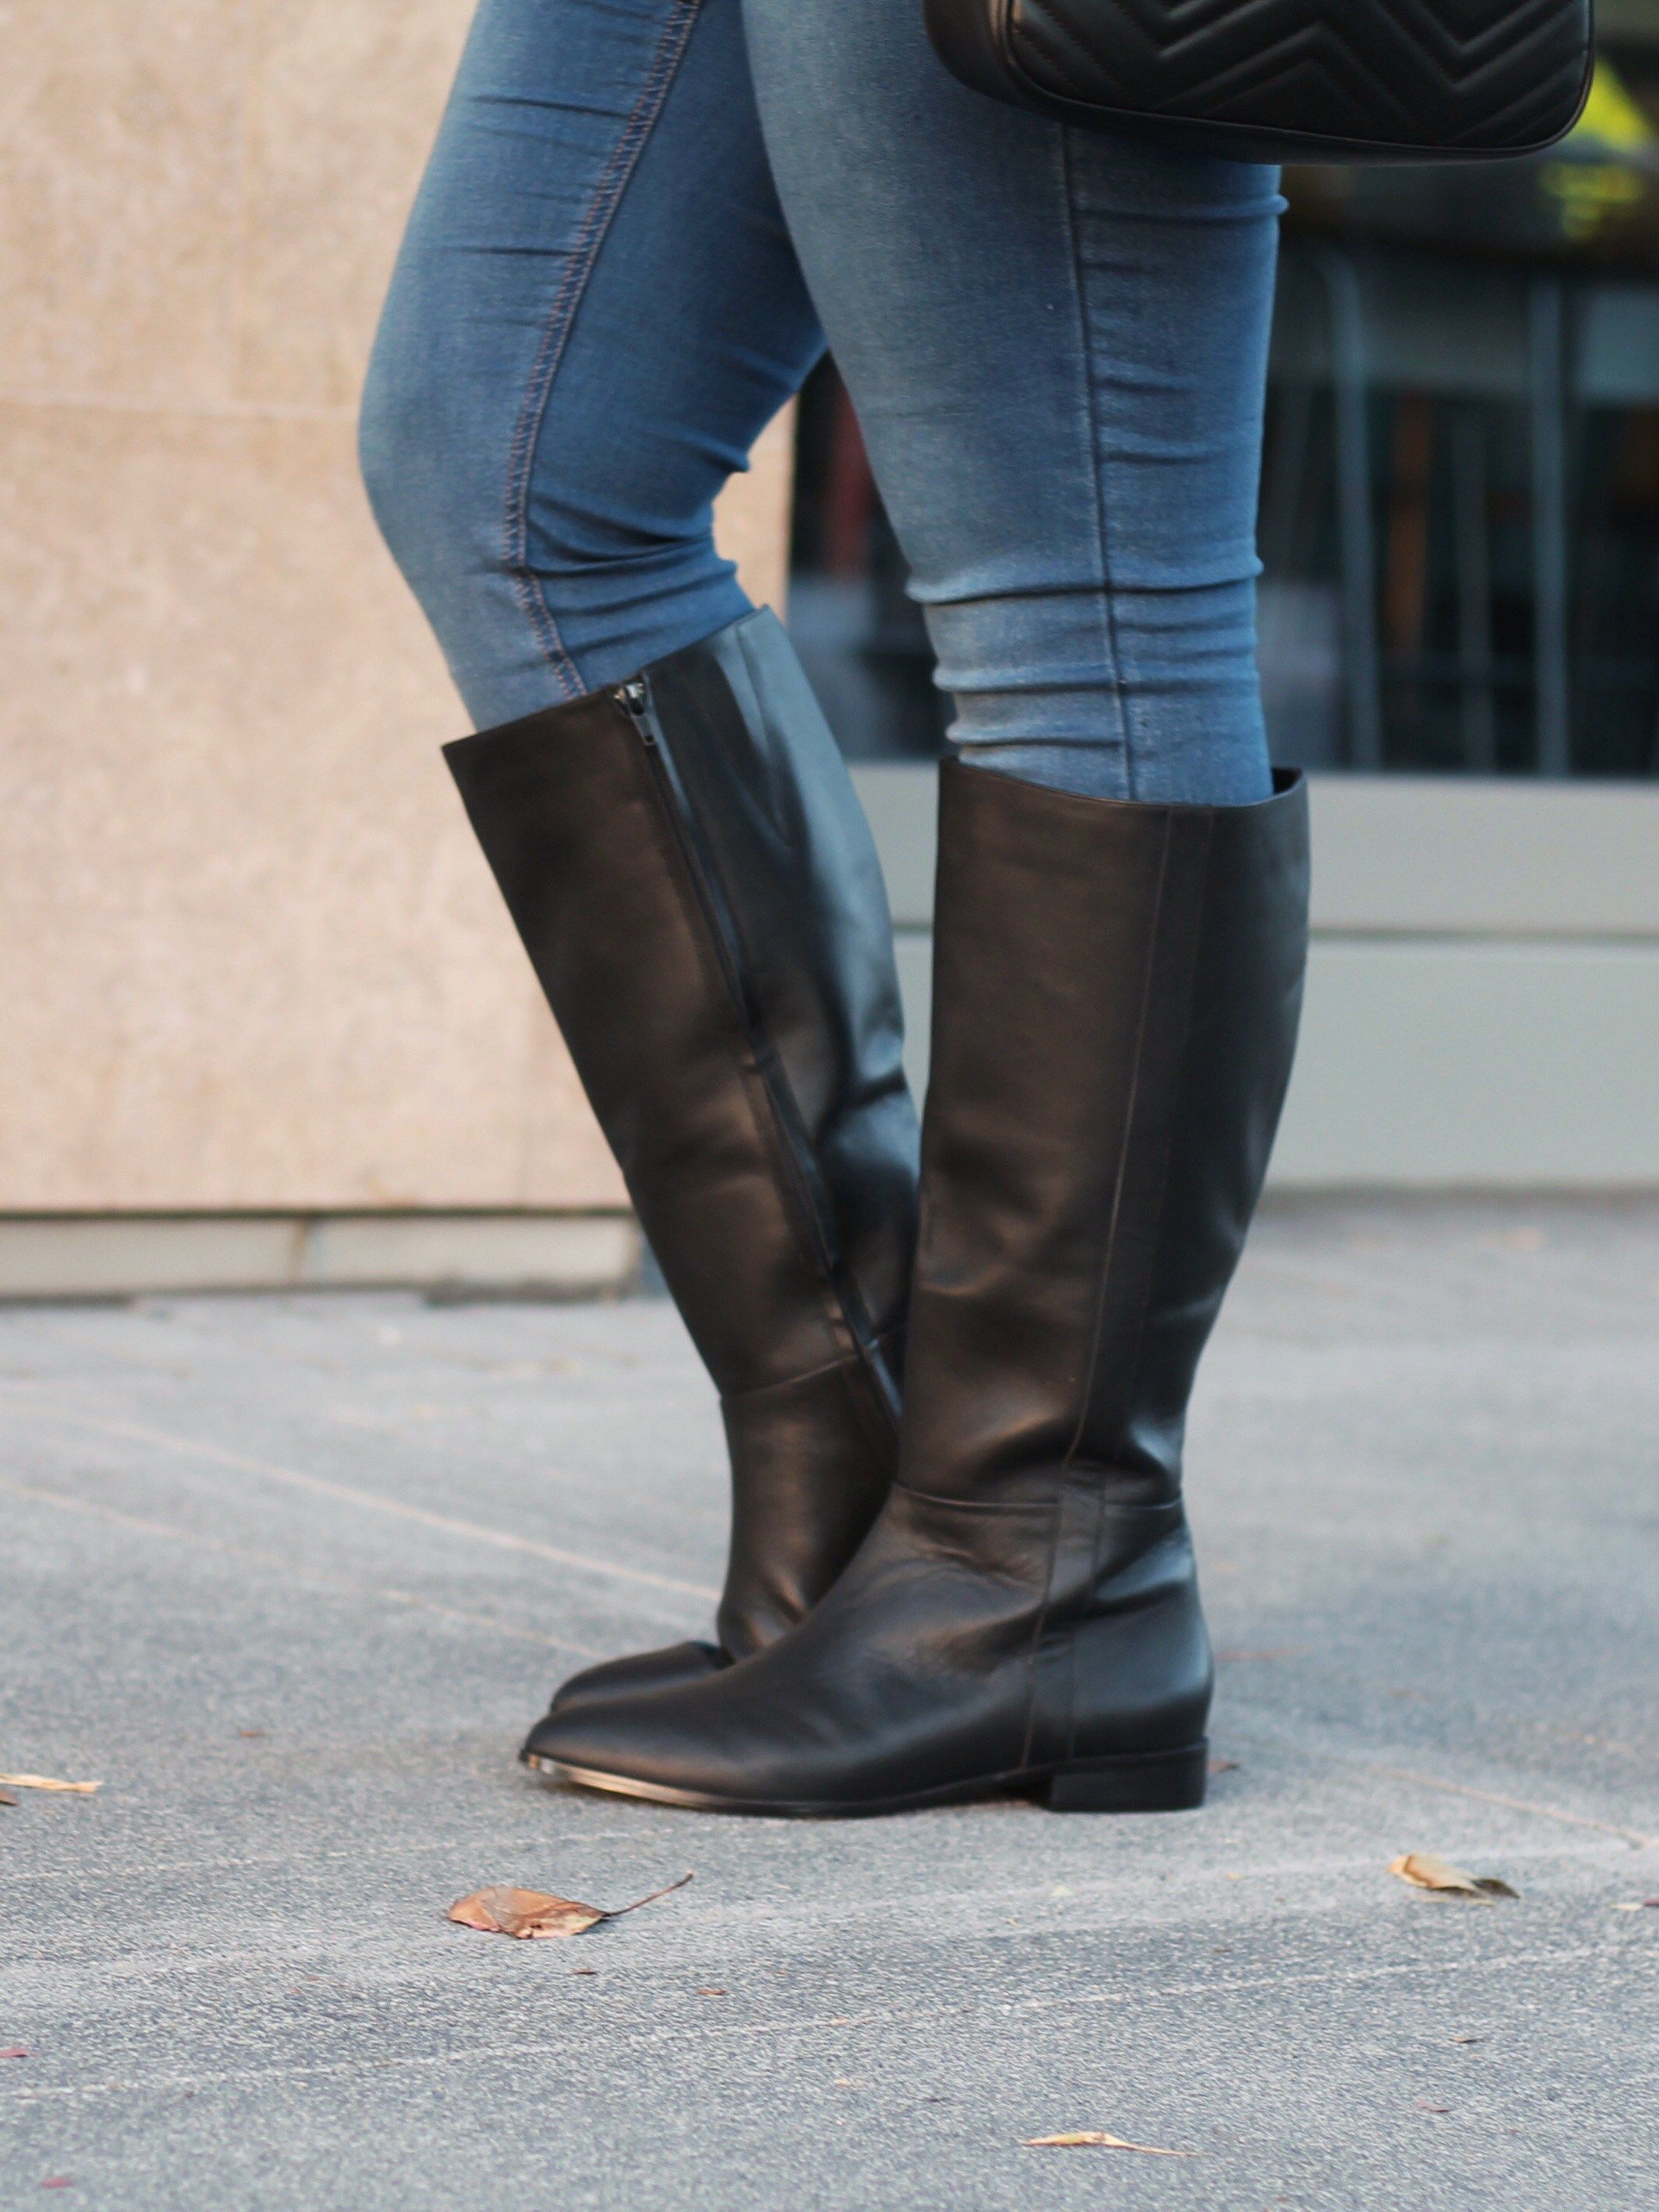 66fa3f1cc751 Holy Fit! Wide Calf Boots for All - Rose Gold Lining